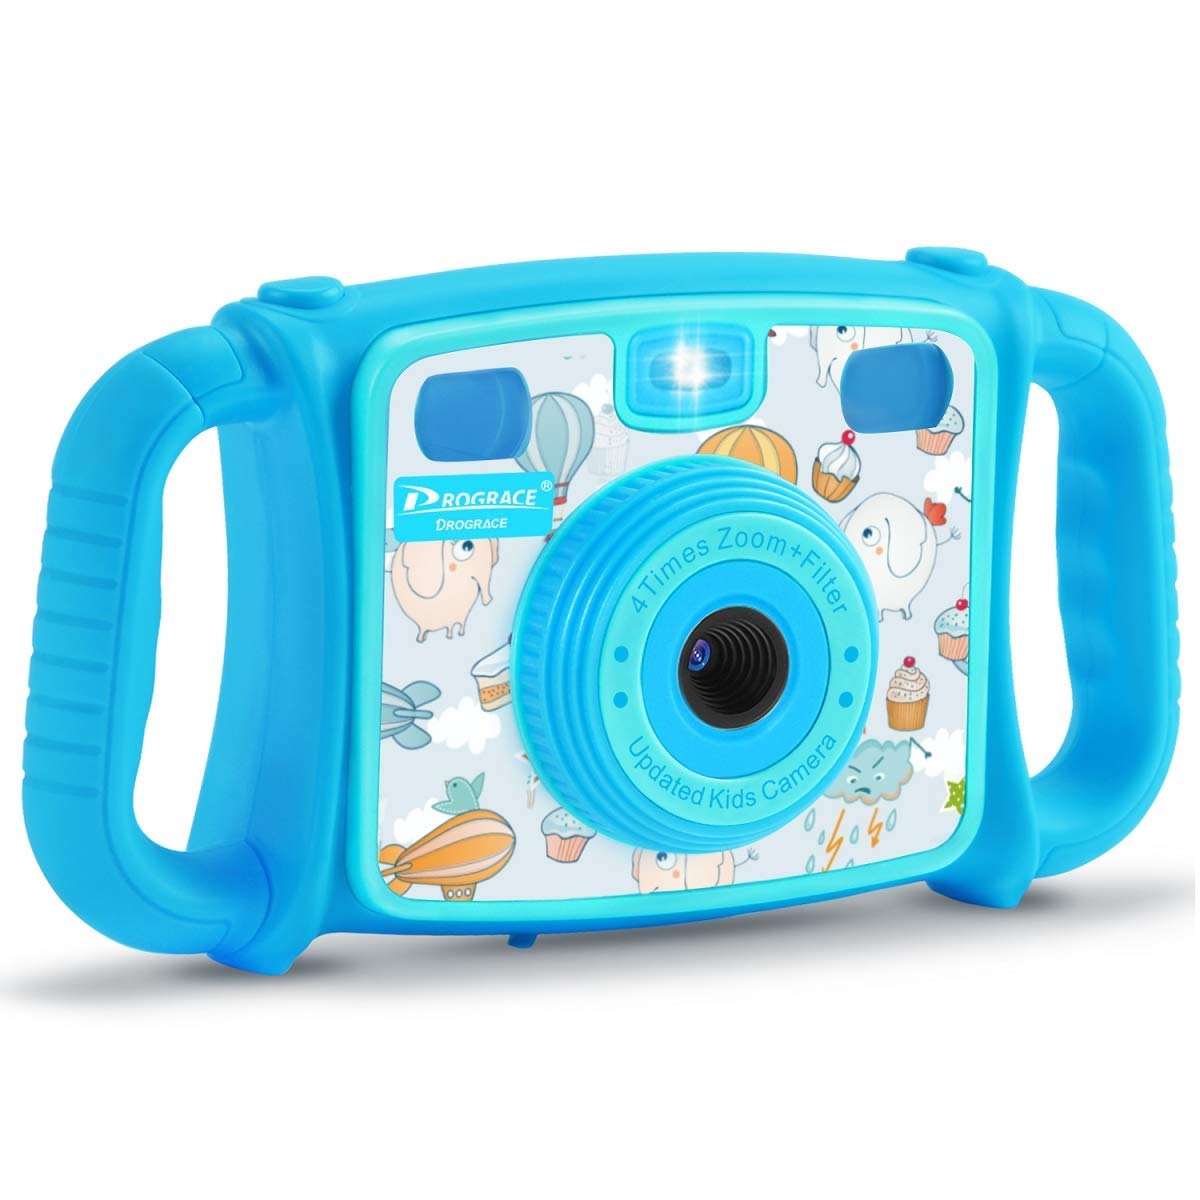 PROGRACE Kids Camera Creative Camera 1080P HD Video Recorder Digital Action Camera Camcorder for Boys Girls Gifts 2.0'' LCD Screen with 4X Digital Zoom and Funny Game(Blue) by PROGRACE